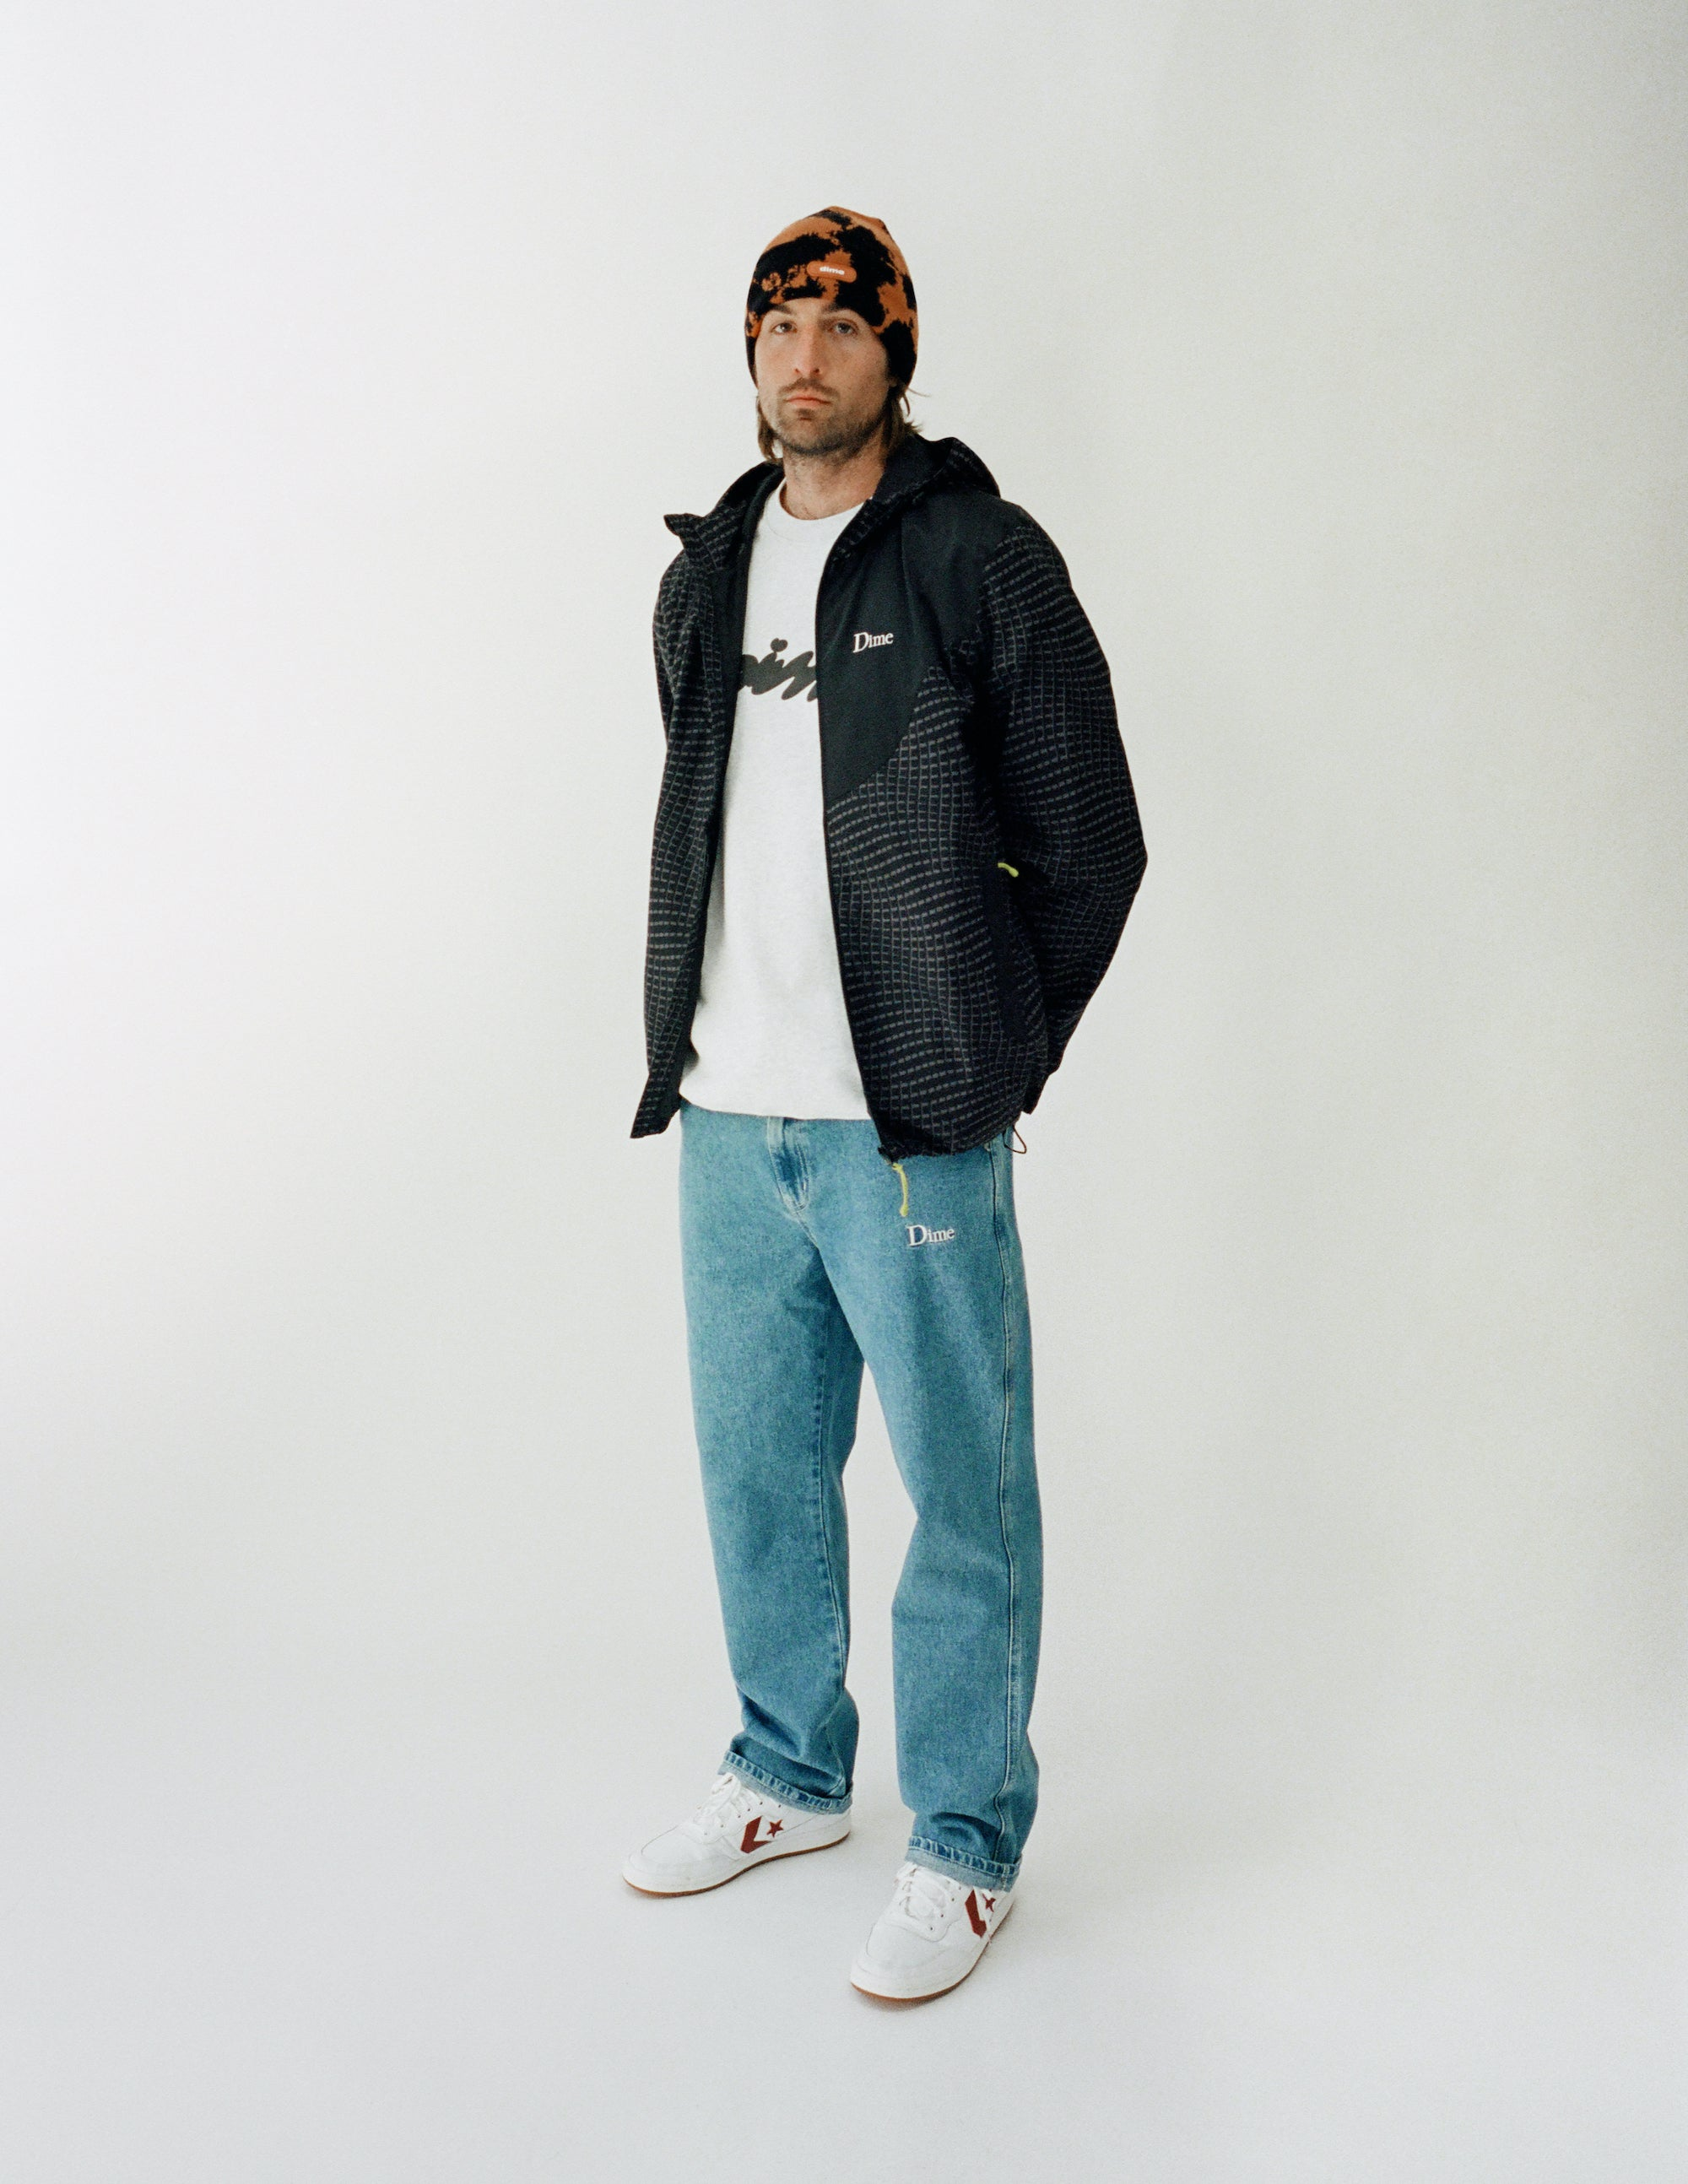 Dime Spring 2021 Lookbook Warp Shell Windbreaker in Black styled with Cotton Denim Pants in Lightwash, Bubbly Crewneck in Ash Grey and Sly Beanie in Orange